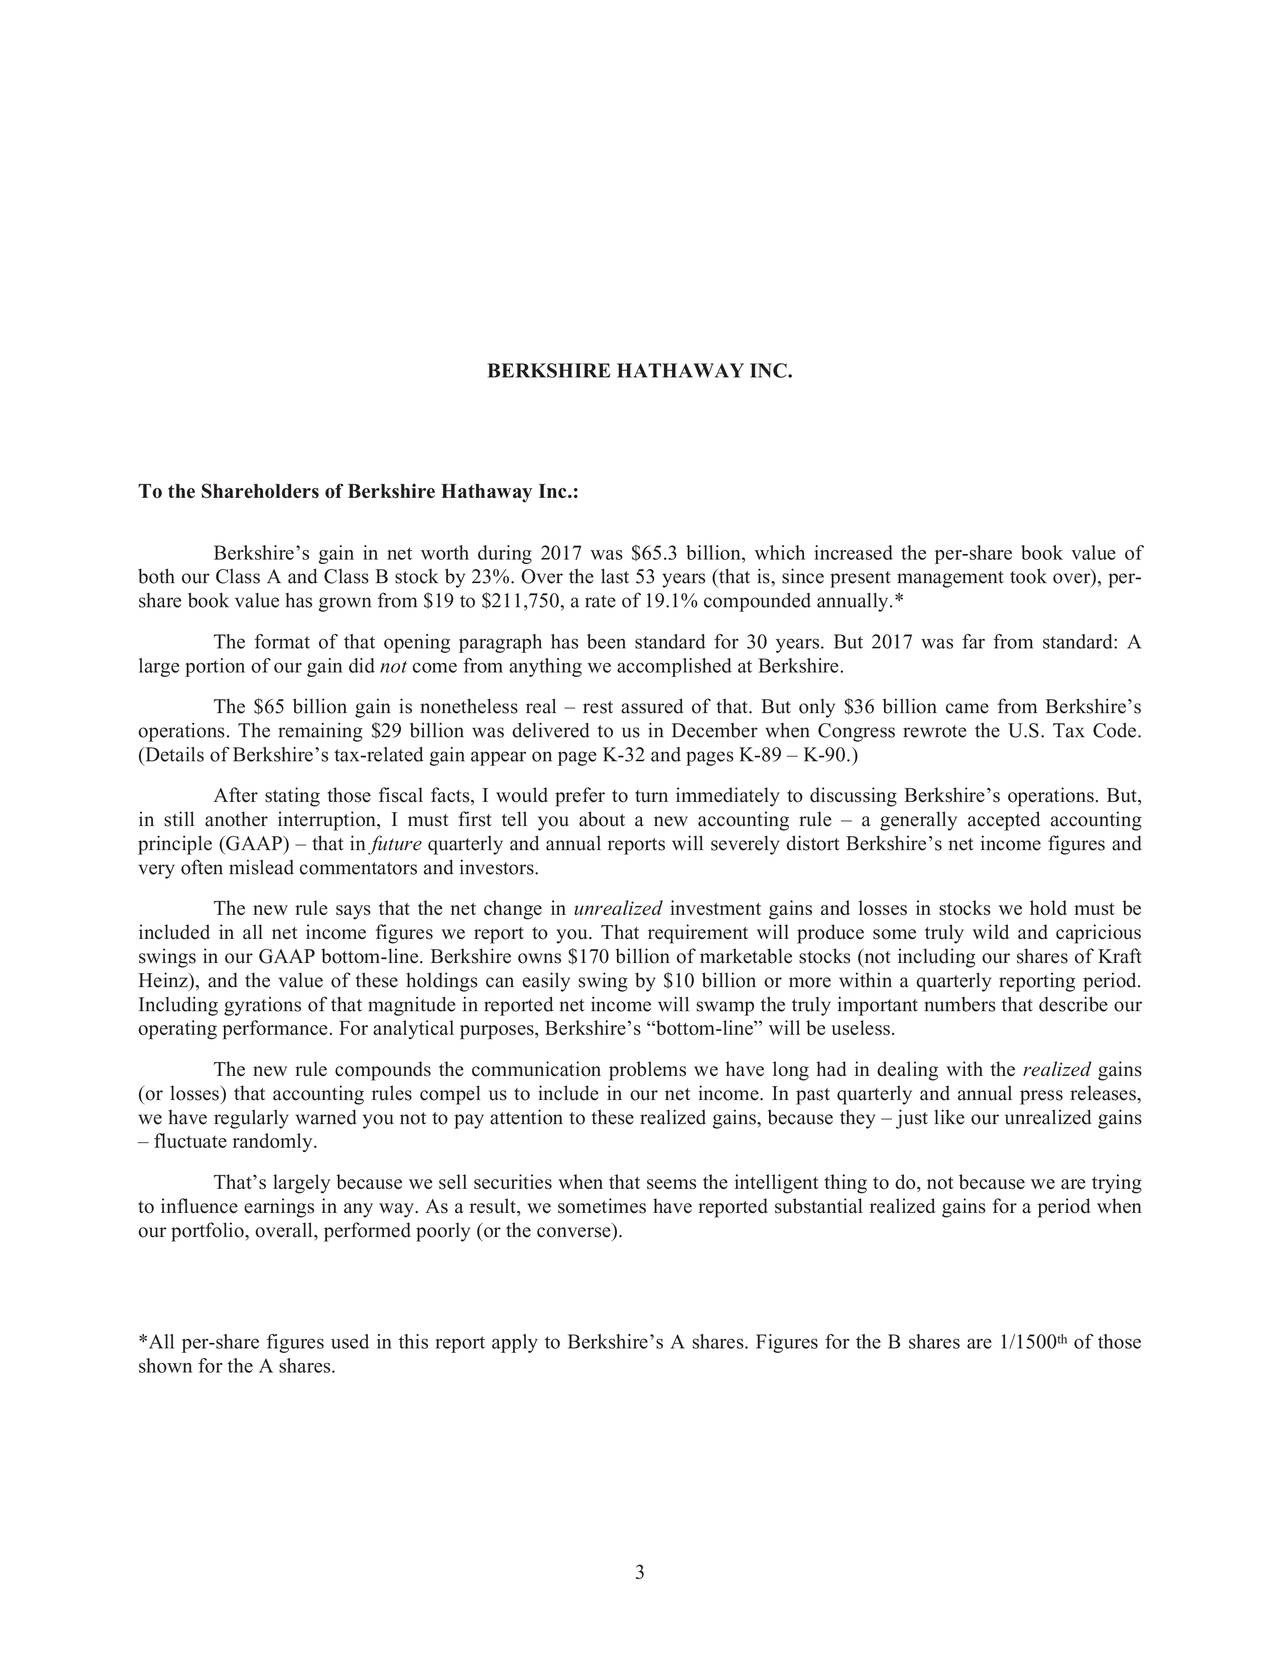 Berkshire hathaway 2017 annual letter berkshire hathaway inc nyse berkshire hathaway 2017 annual letter berkshire hathaway inc nysebrka seeking alpha buycottarizona Images